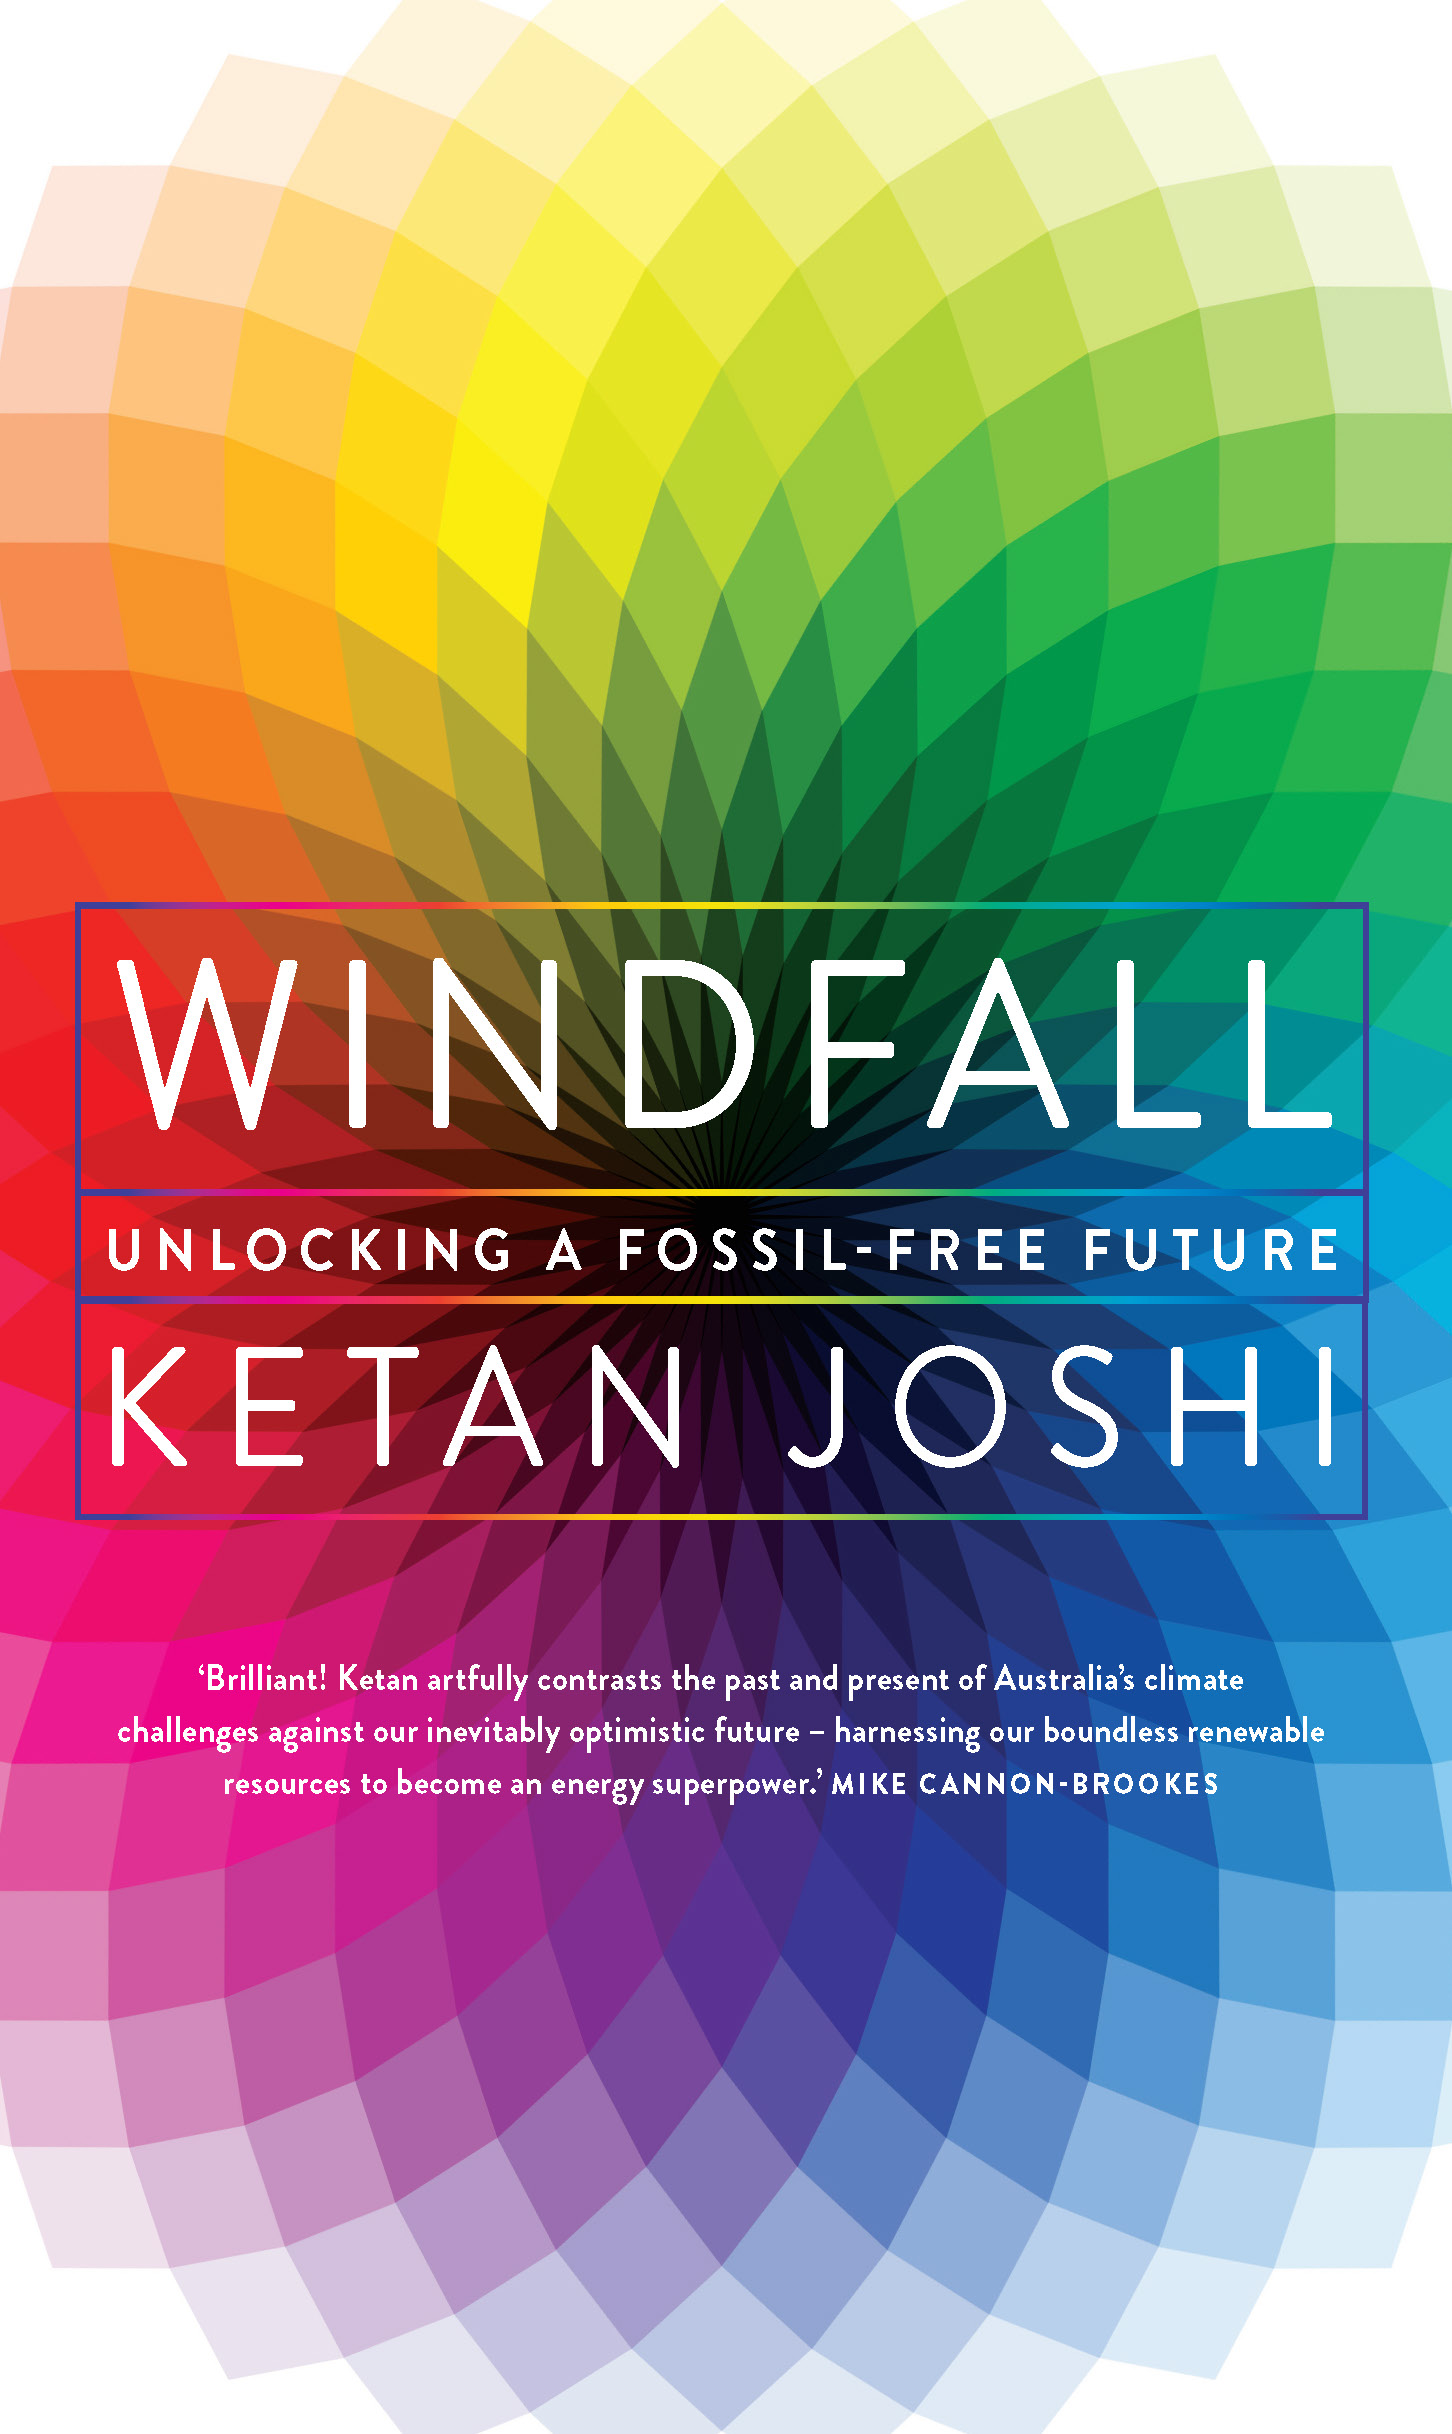 Windfall: Unlocking a fossil-free future